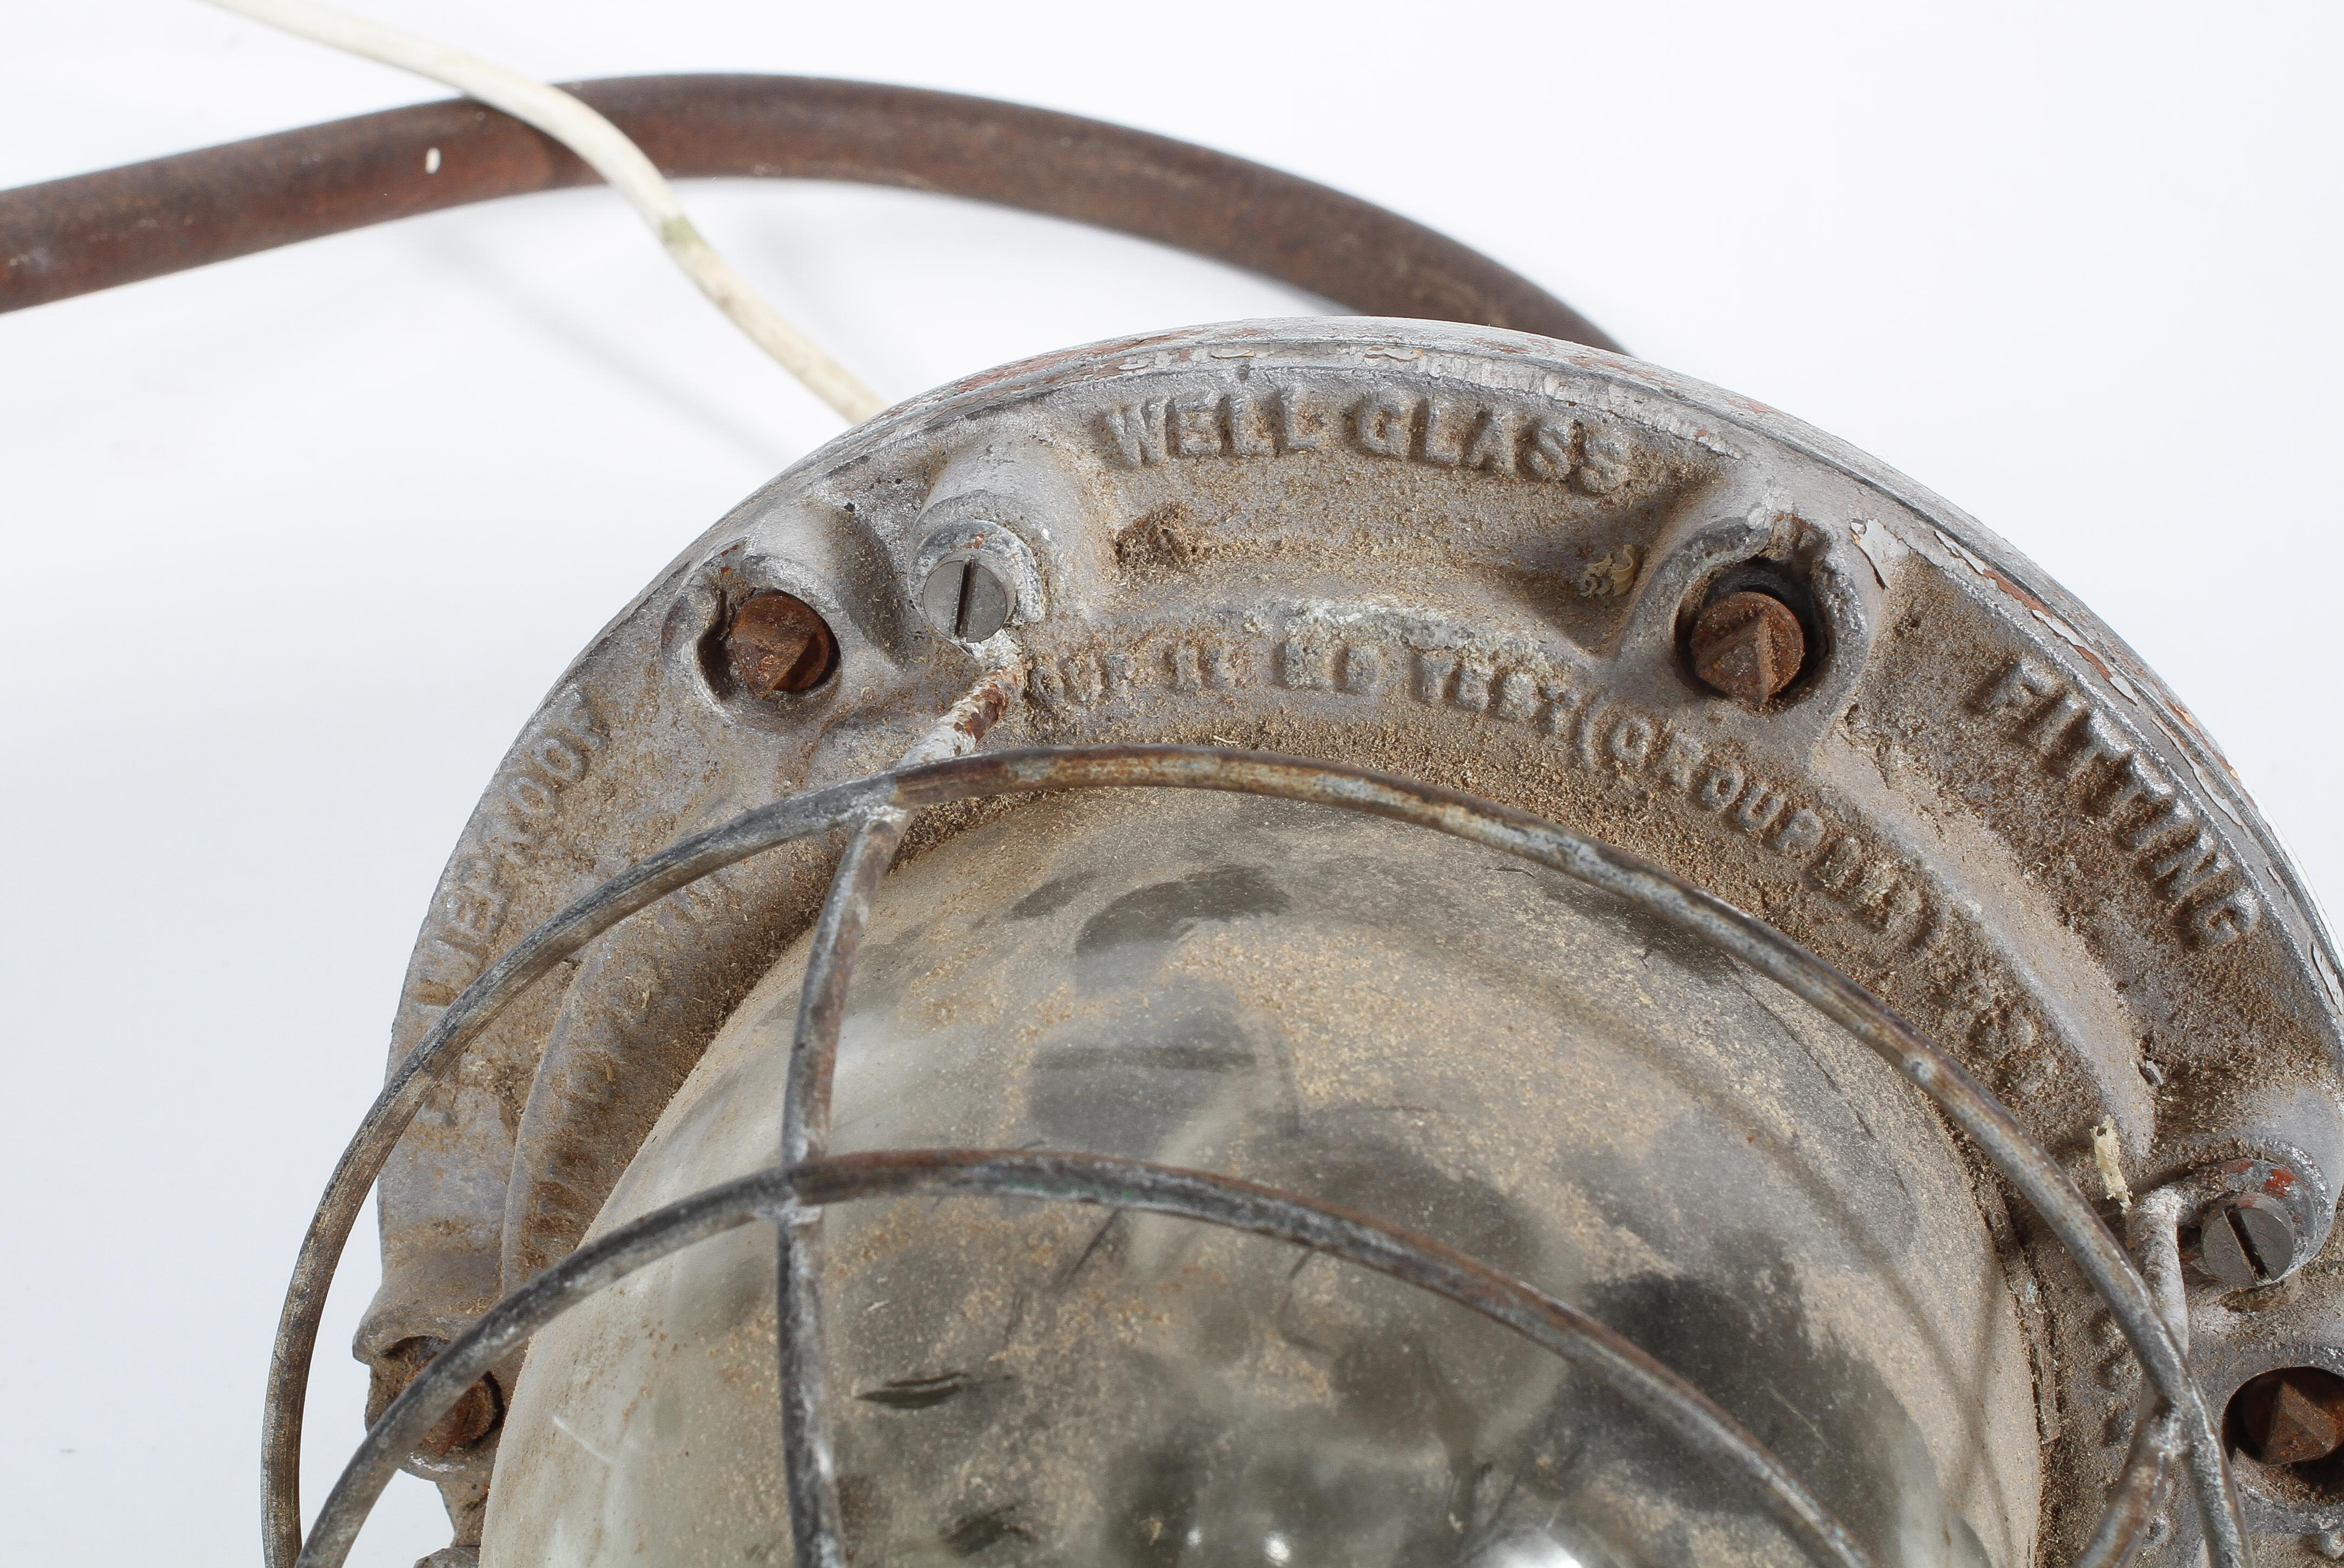 A Hayes & Co 'The Wigan' lamp, with cage surround to the large bulb, - Image 2 of 2